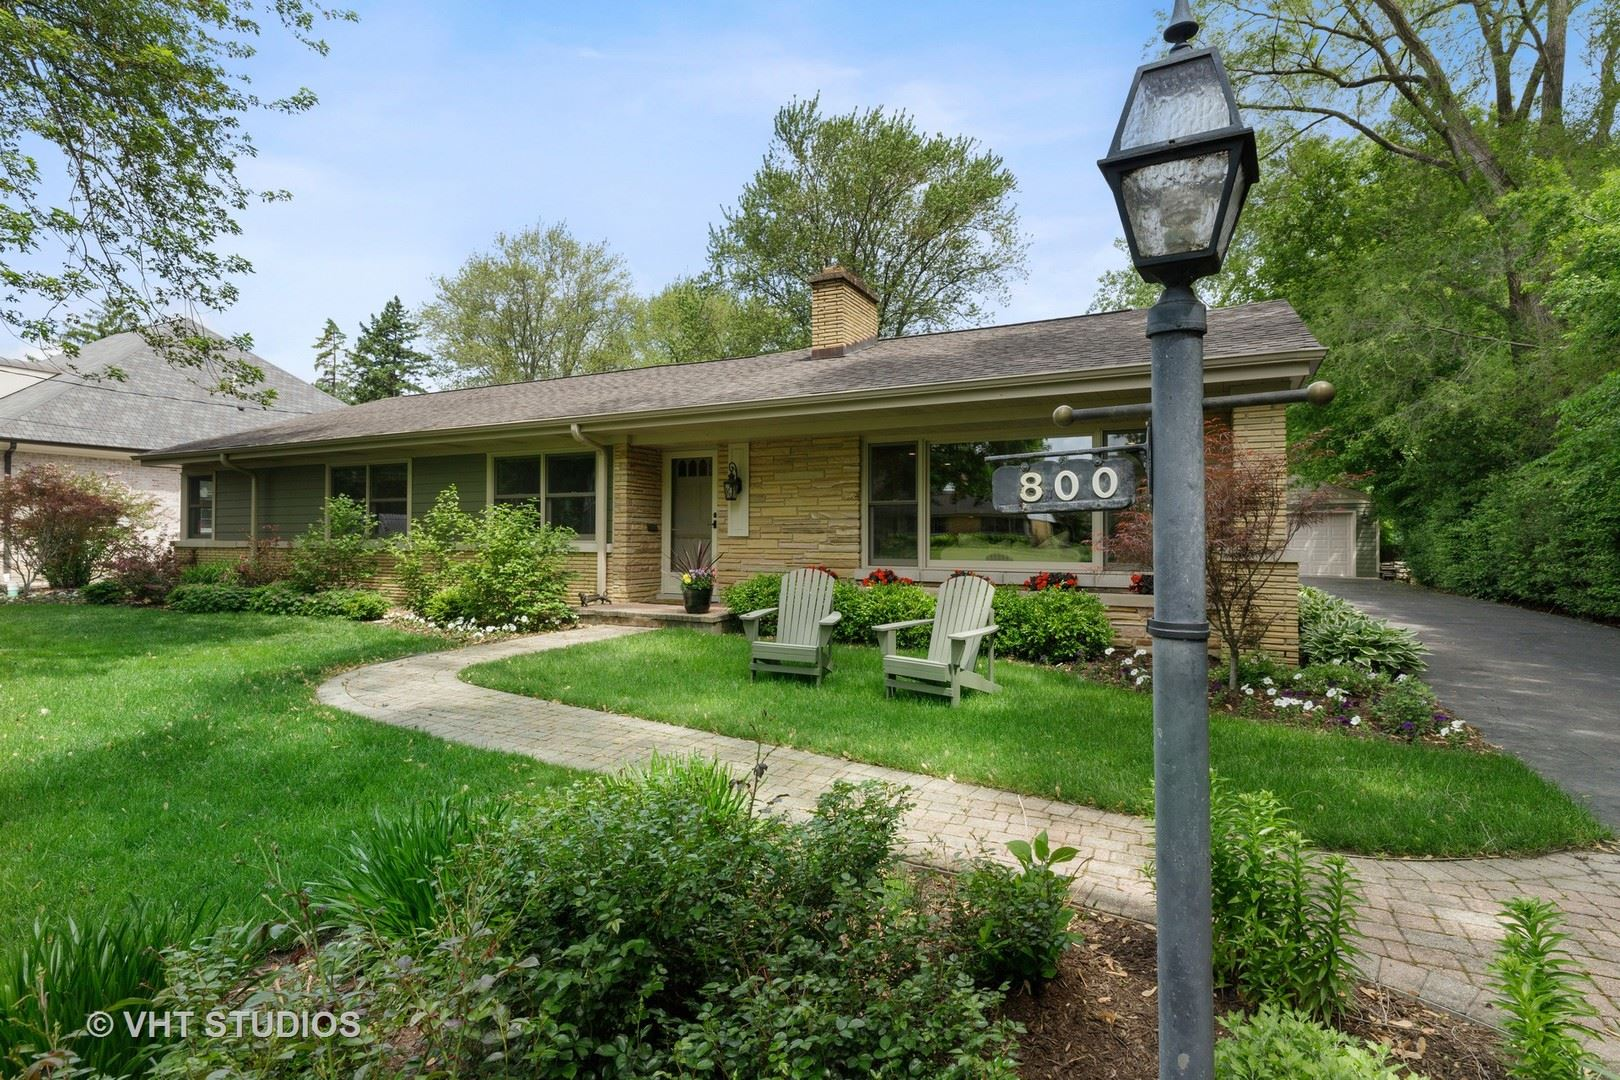 800 Queens Lane, Glenview, IL 60025 - #: 10749831